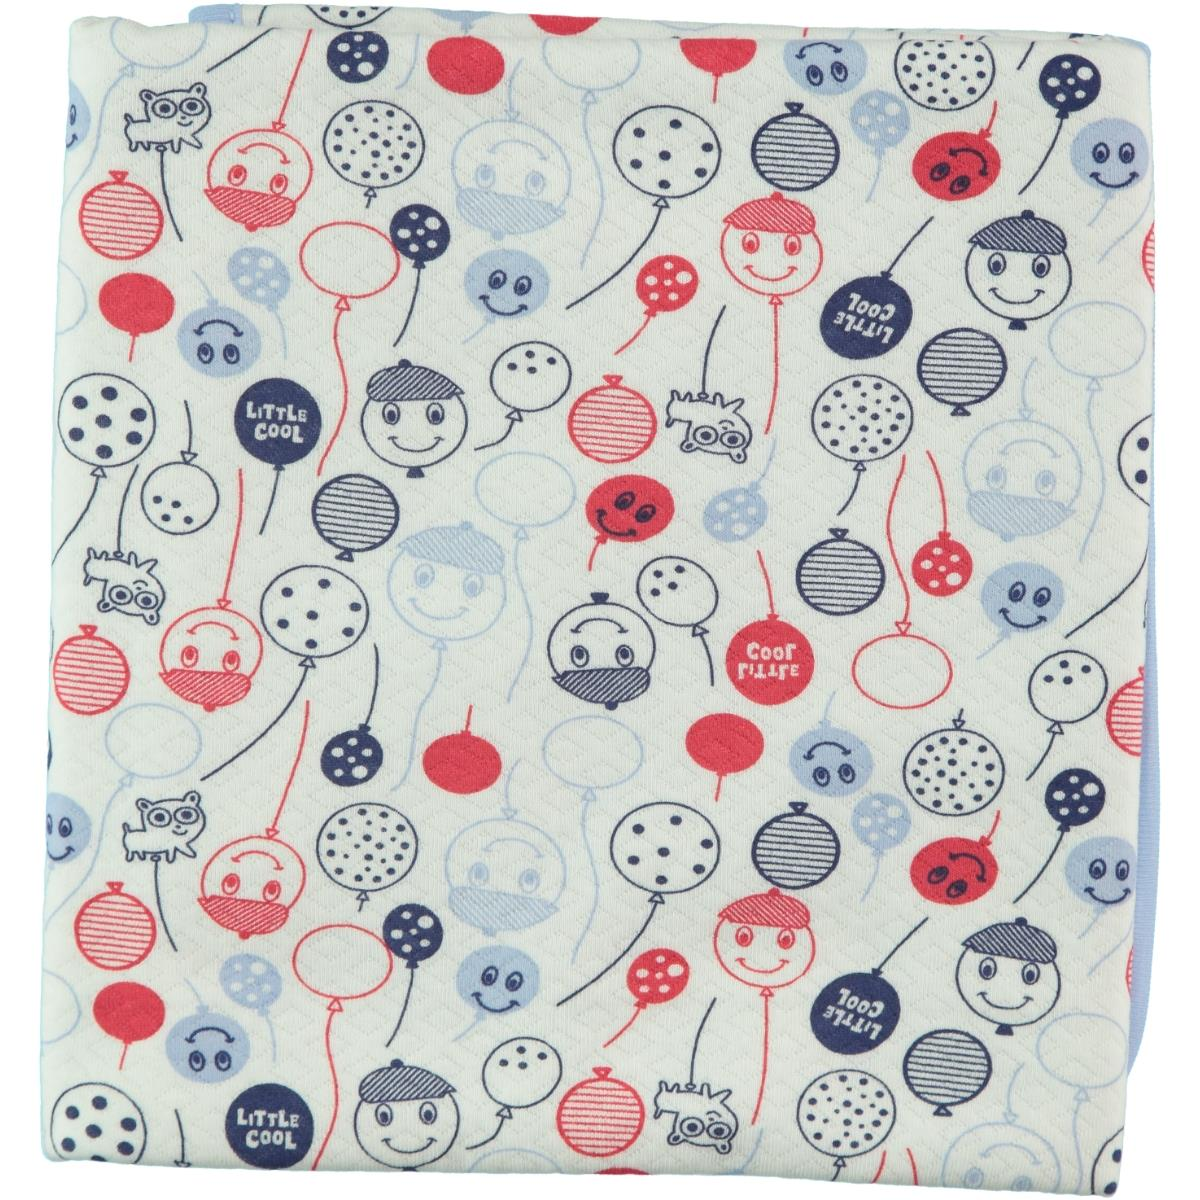 Civil Baby Baby double layer Blanket Blue 80x85 Cm